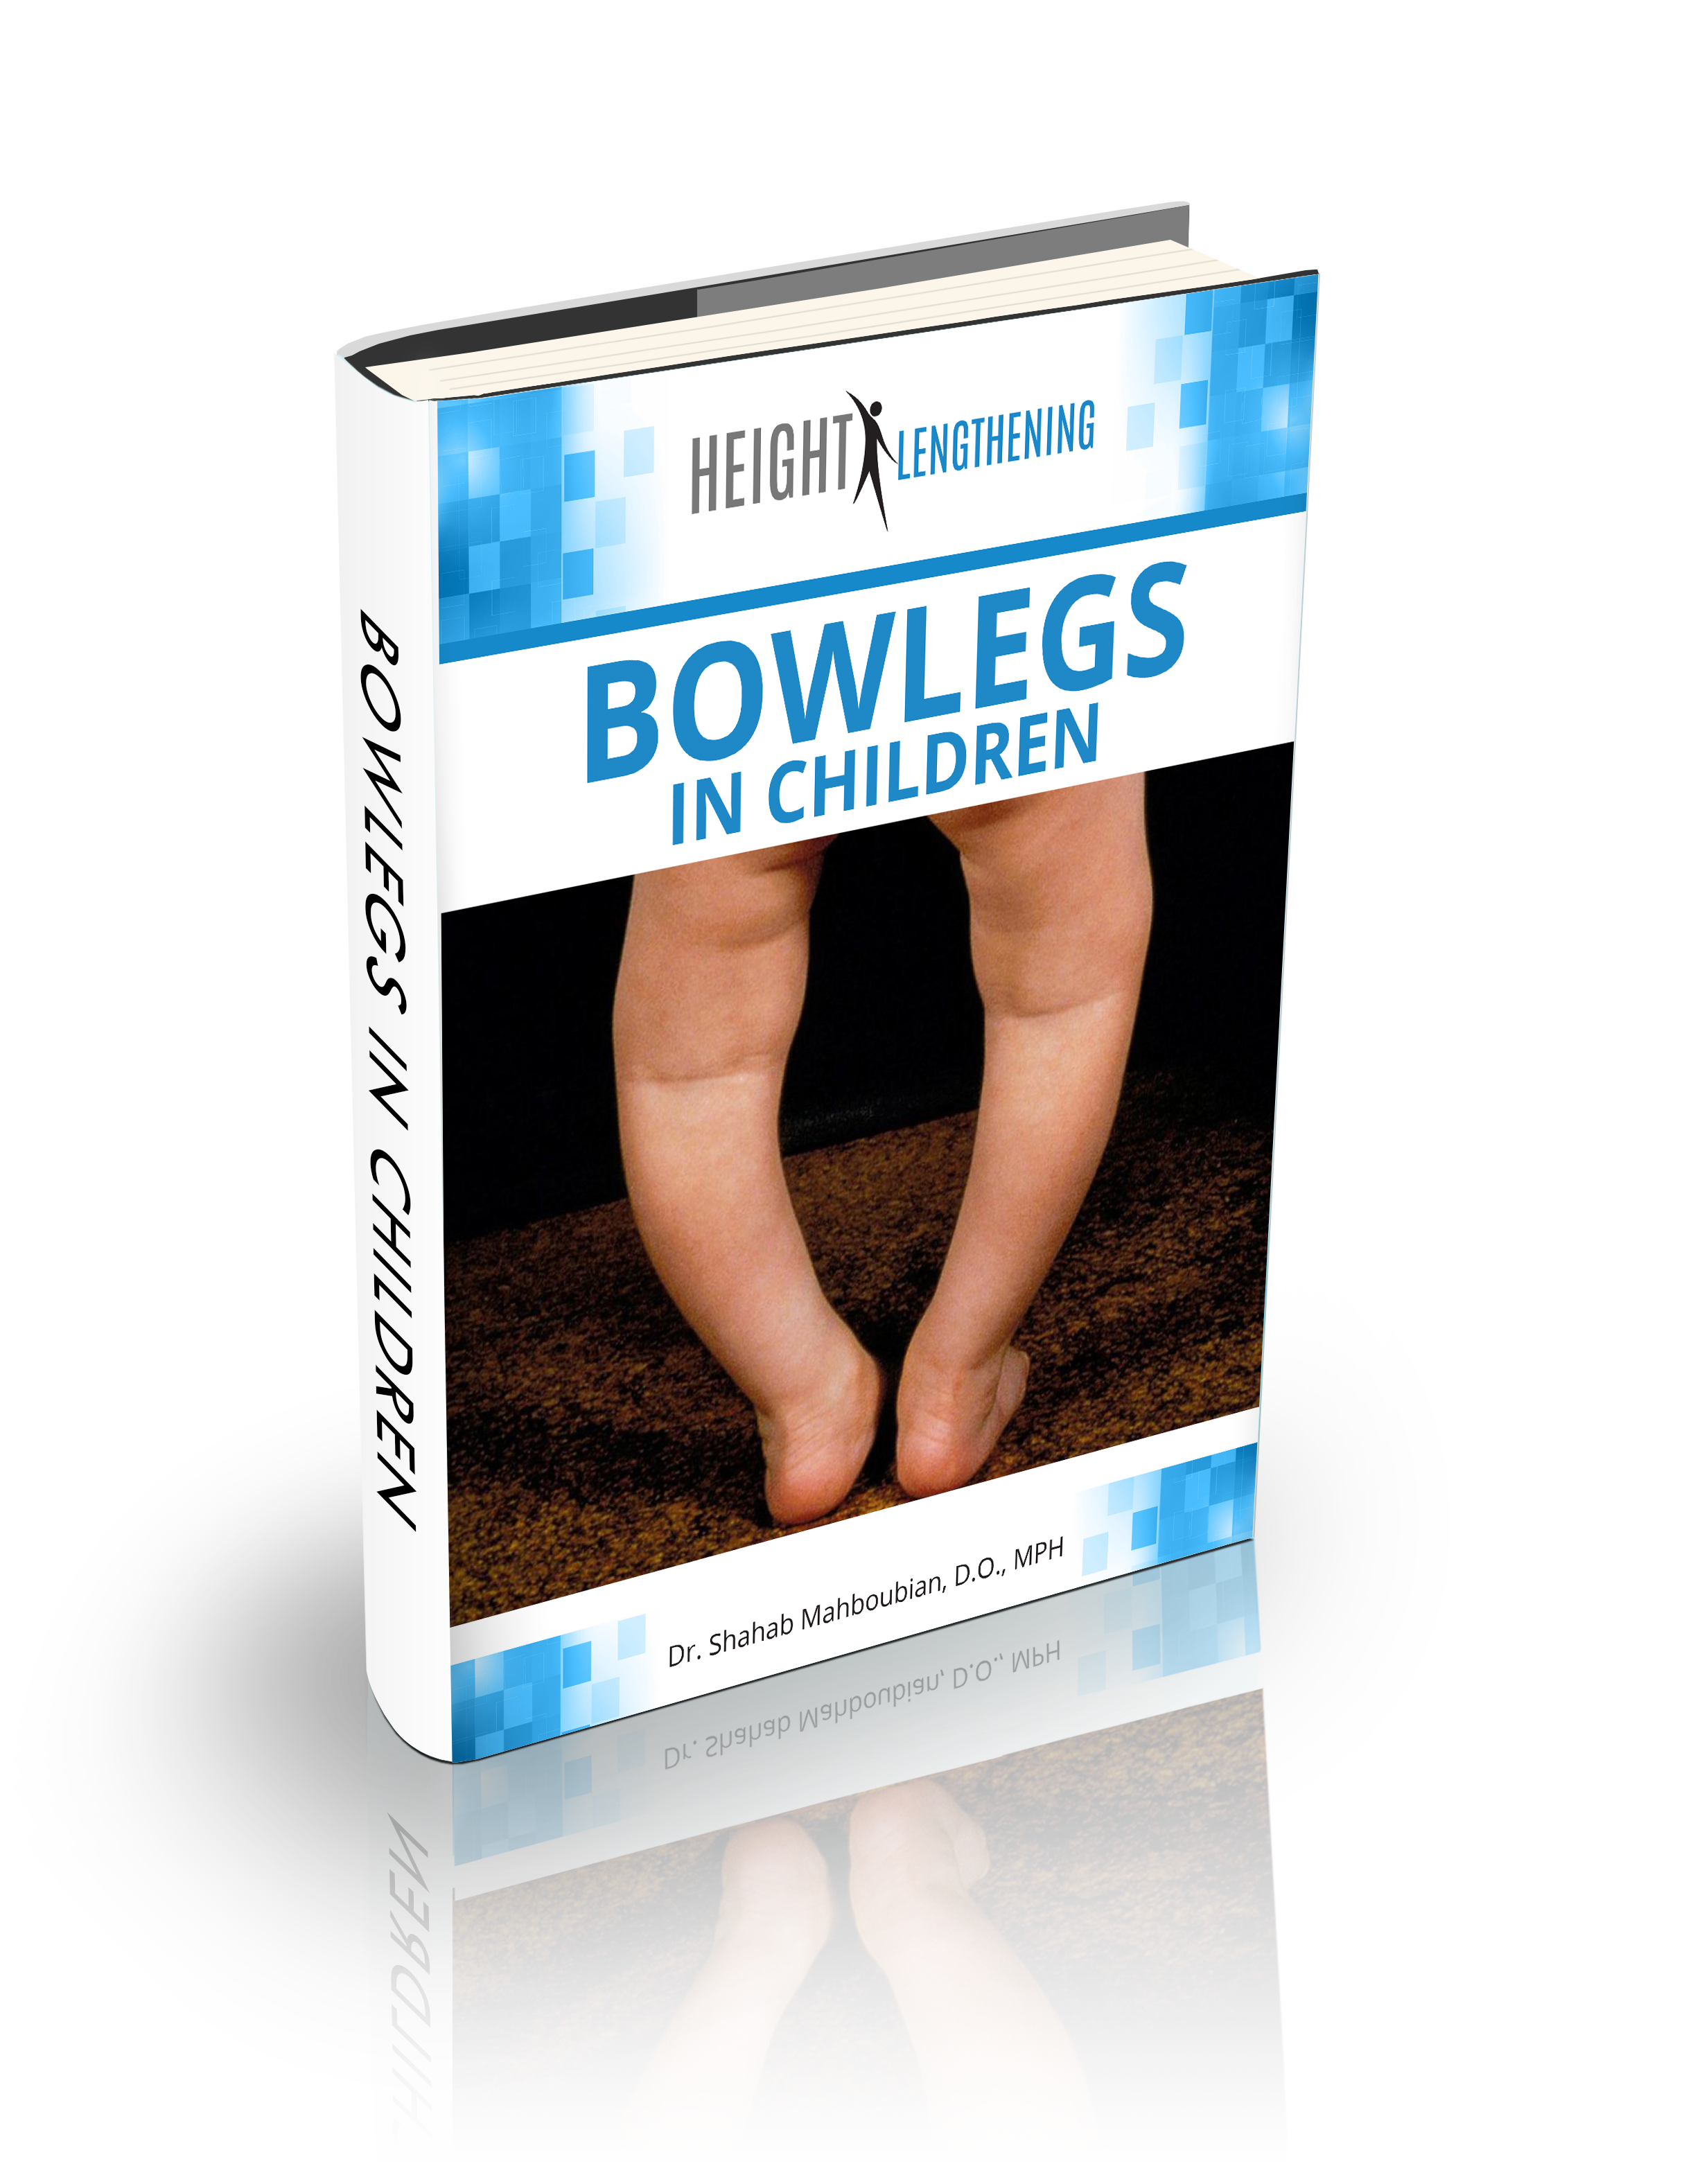 Bowlegs in Children FREE eBook Download